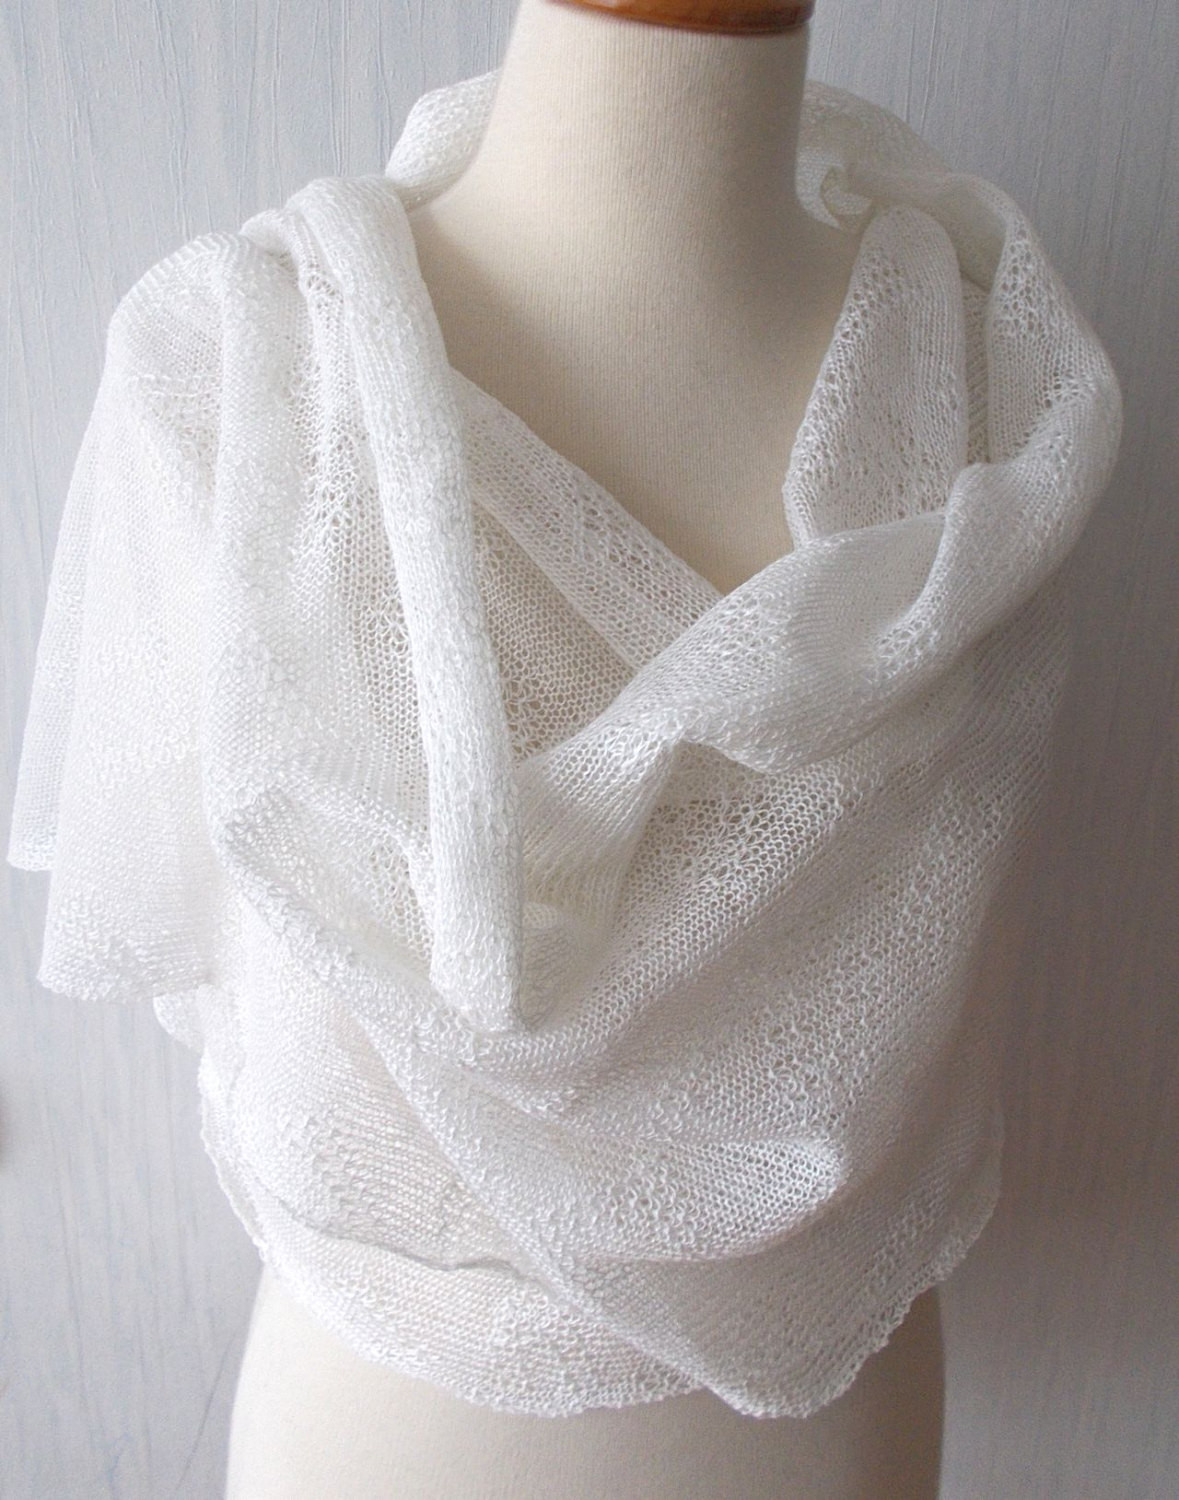 Best Of Linen Scarf White Shawl Knitted Natural Summer Wedding Wrap Knitted Shawl Wrap Of Superb 49 Images Knitted Shawl Wrap